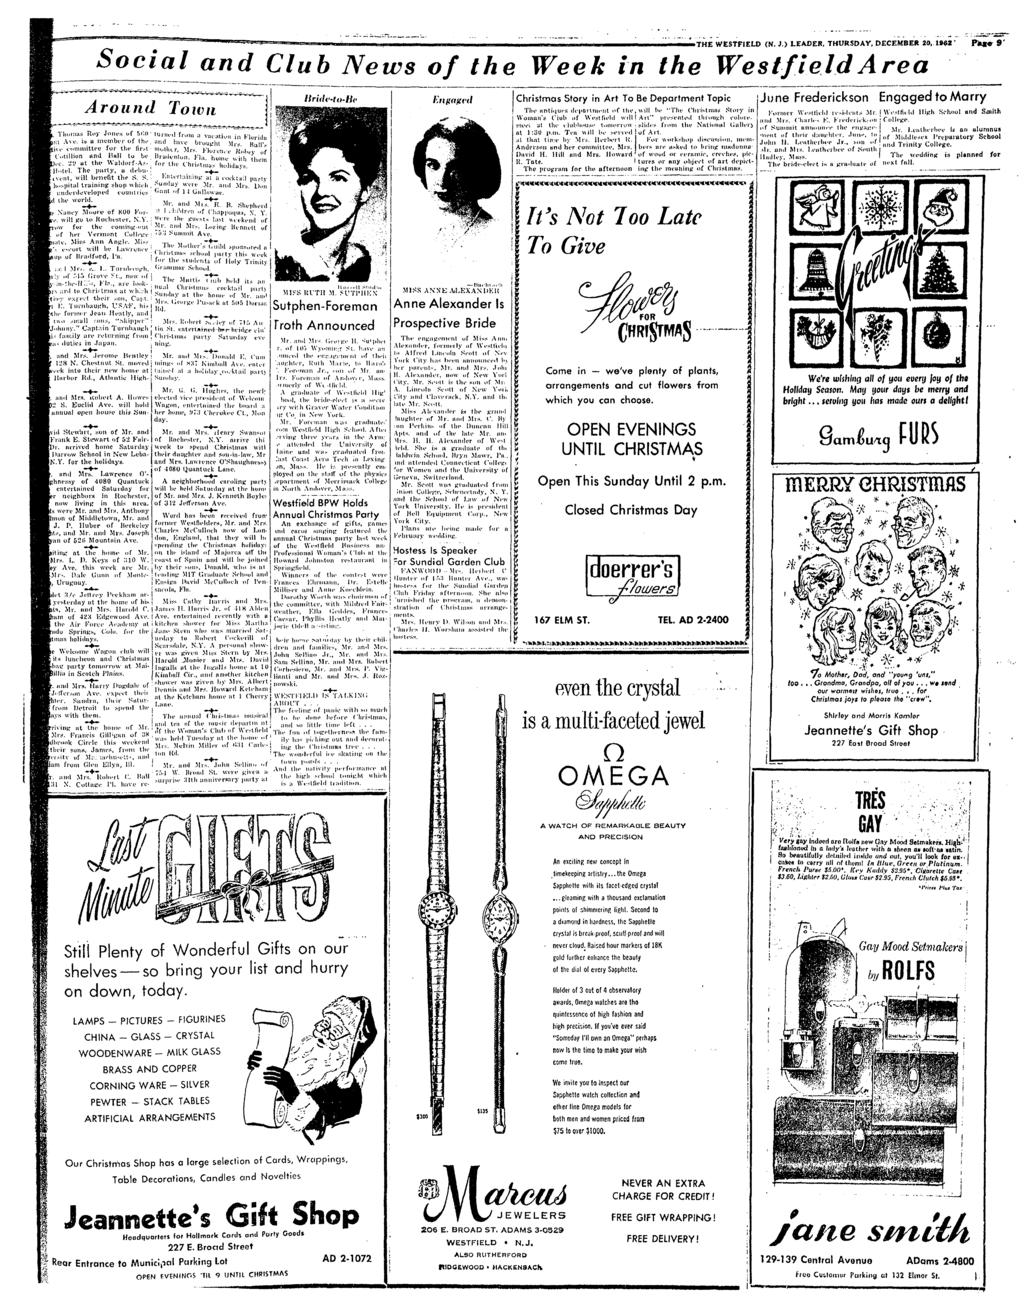 THE WESTFIELO IN. }.) LEADER, THURSDAY, DECEMBER 20, 1962 Pk«e 9' Socal and Club News of the Week n the West-feld Area Around Tovn and Mrs. Ttohcrl C. Hall 1 N. Collarc l'l.